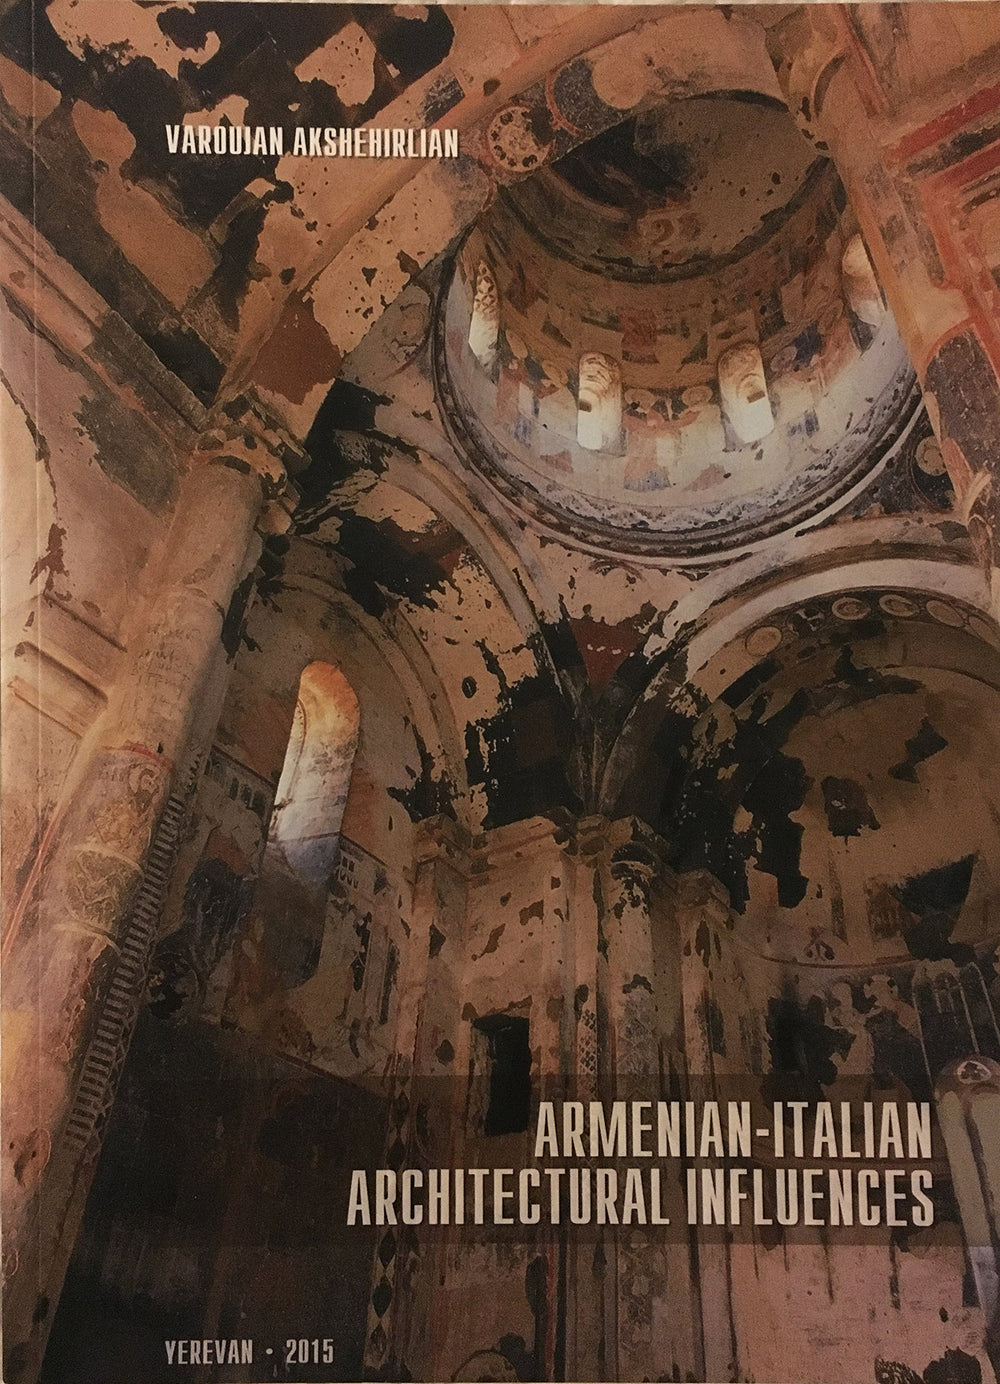 Armenian-Italian Architectural Influences